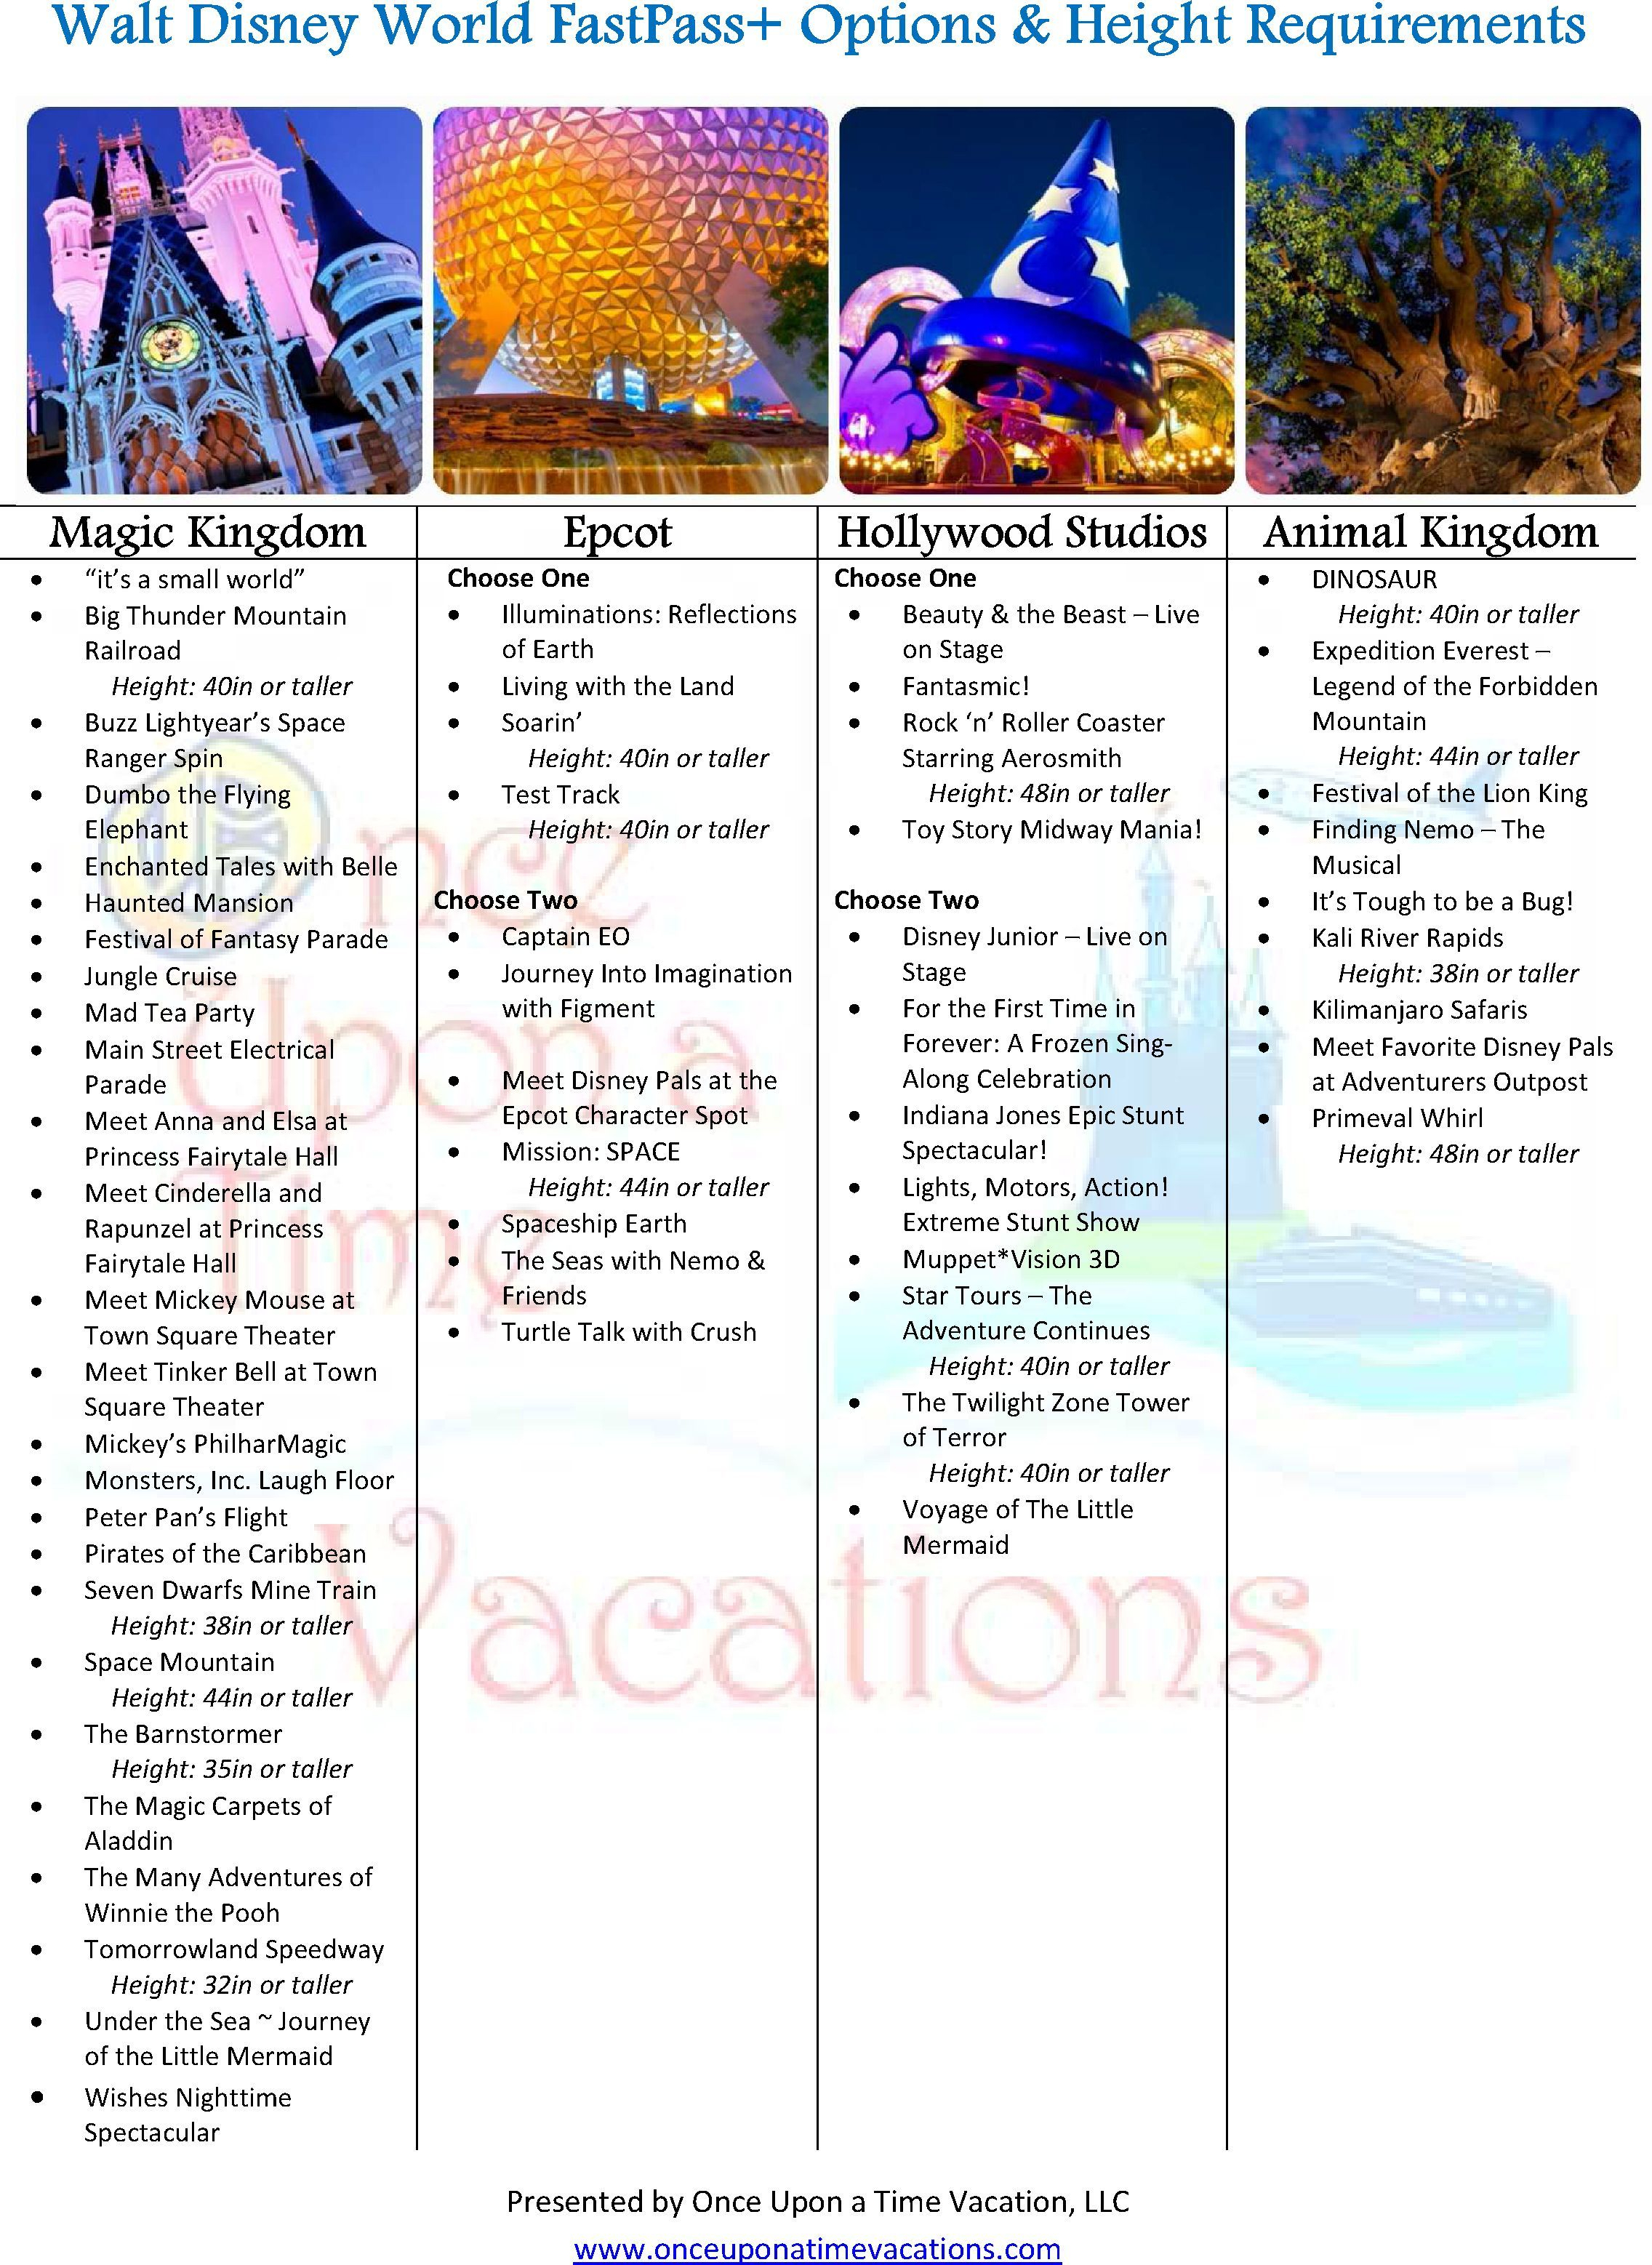 Walt Disney World 101 ~ Fastpass+ Tiers And Recommendations in Printable List Of Rides At Disney World 2020 Checklist